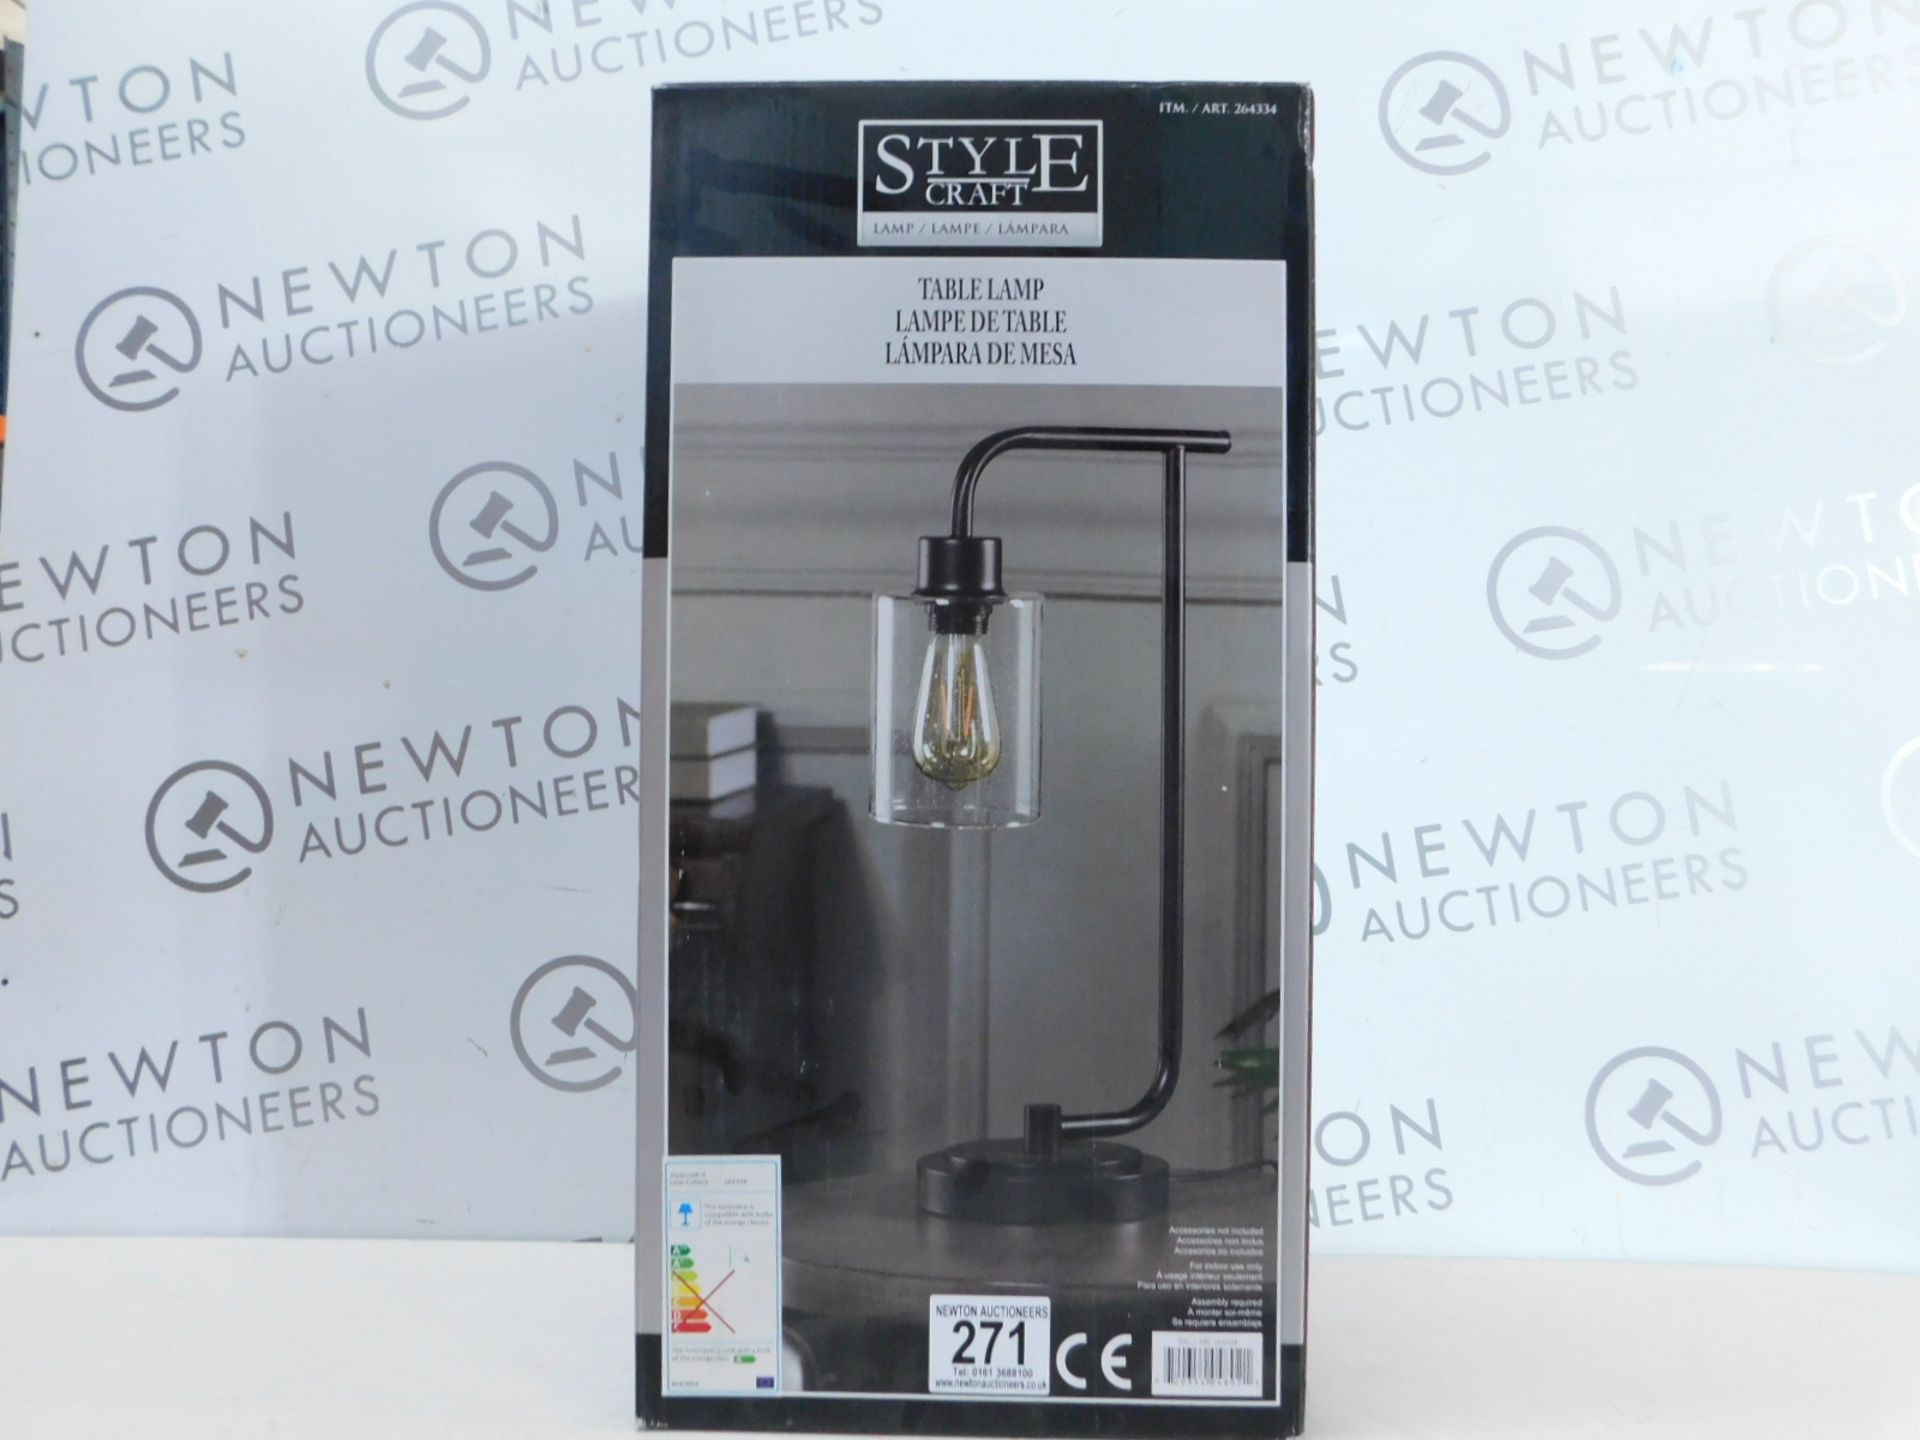 Lot 271 - 1 BOXED STYLECRAFT LUCAS TABLE LAMP RRP £49.99